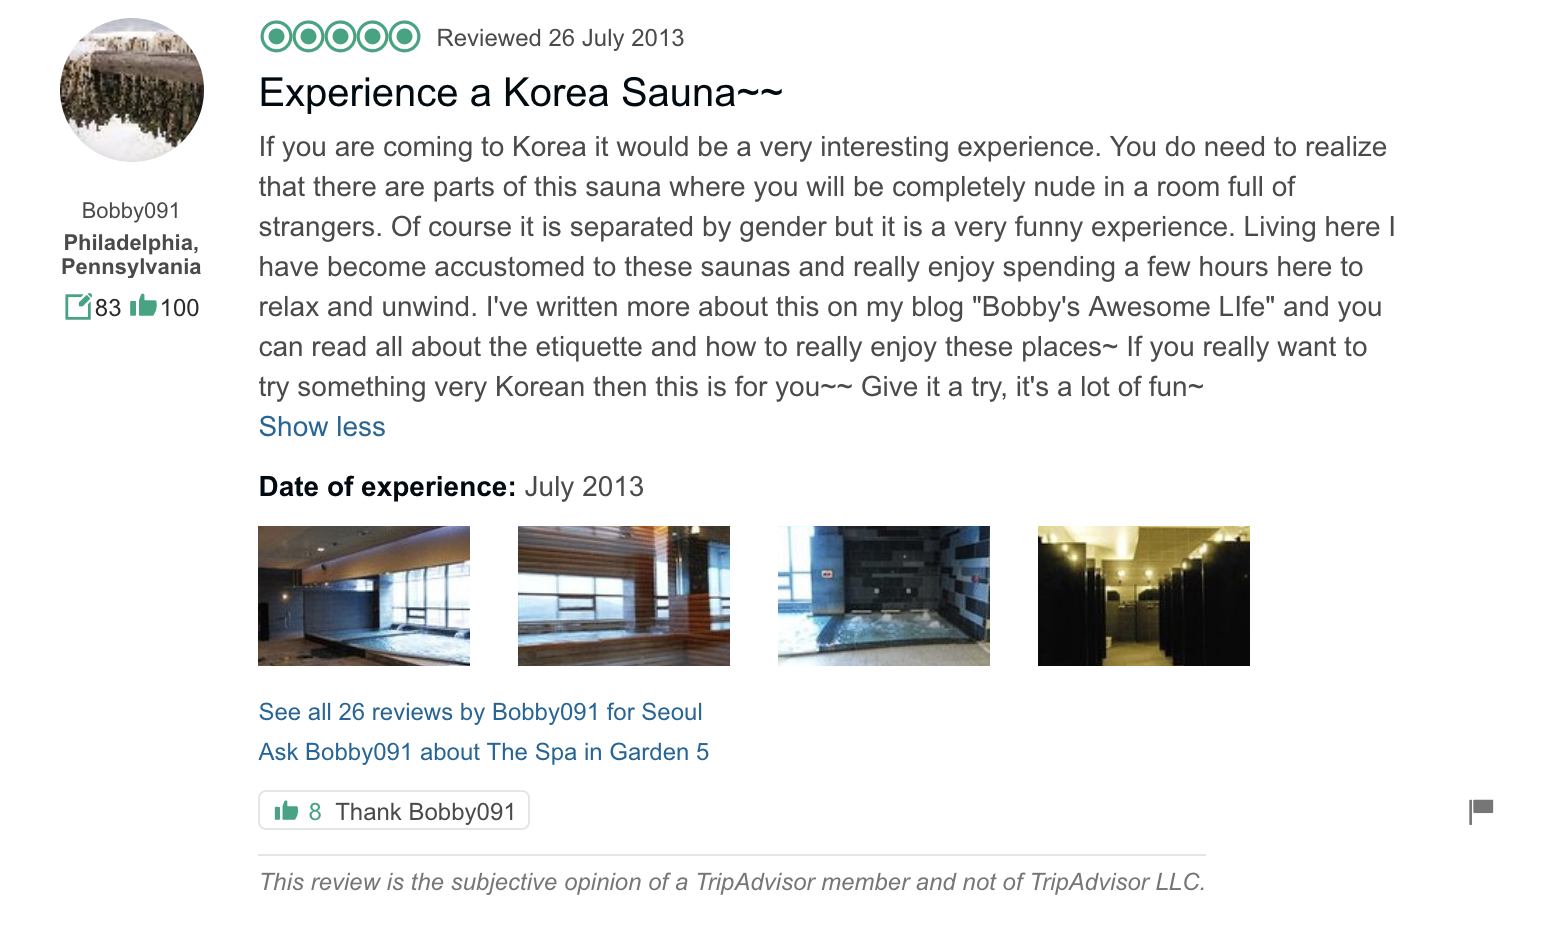 'You do need to realize that there are parts of this sauna where you will be completely nude... Of course it is separated by gender but it is a very funny experience…If you want to try something very Korean then this is for you…' - The Spa in Garden 5: Reviews from TripAdvisor